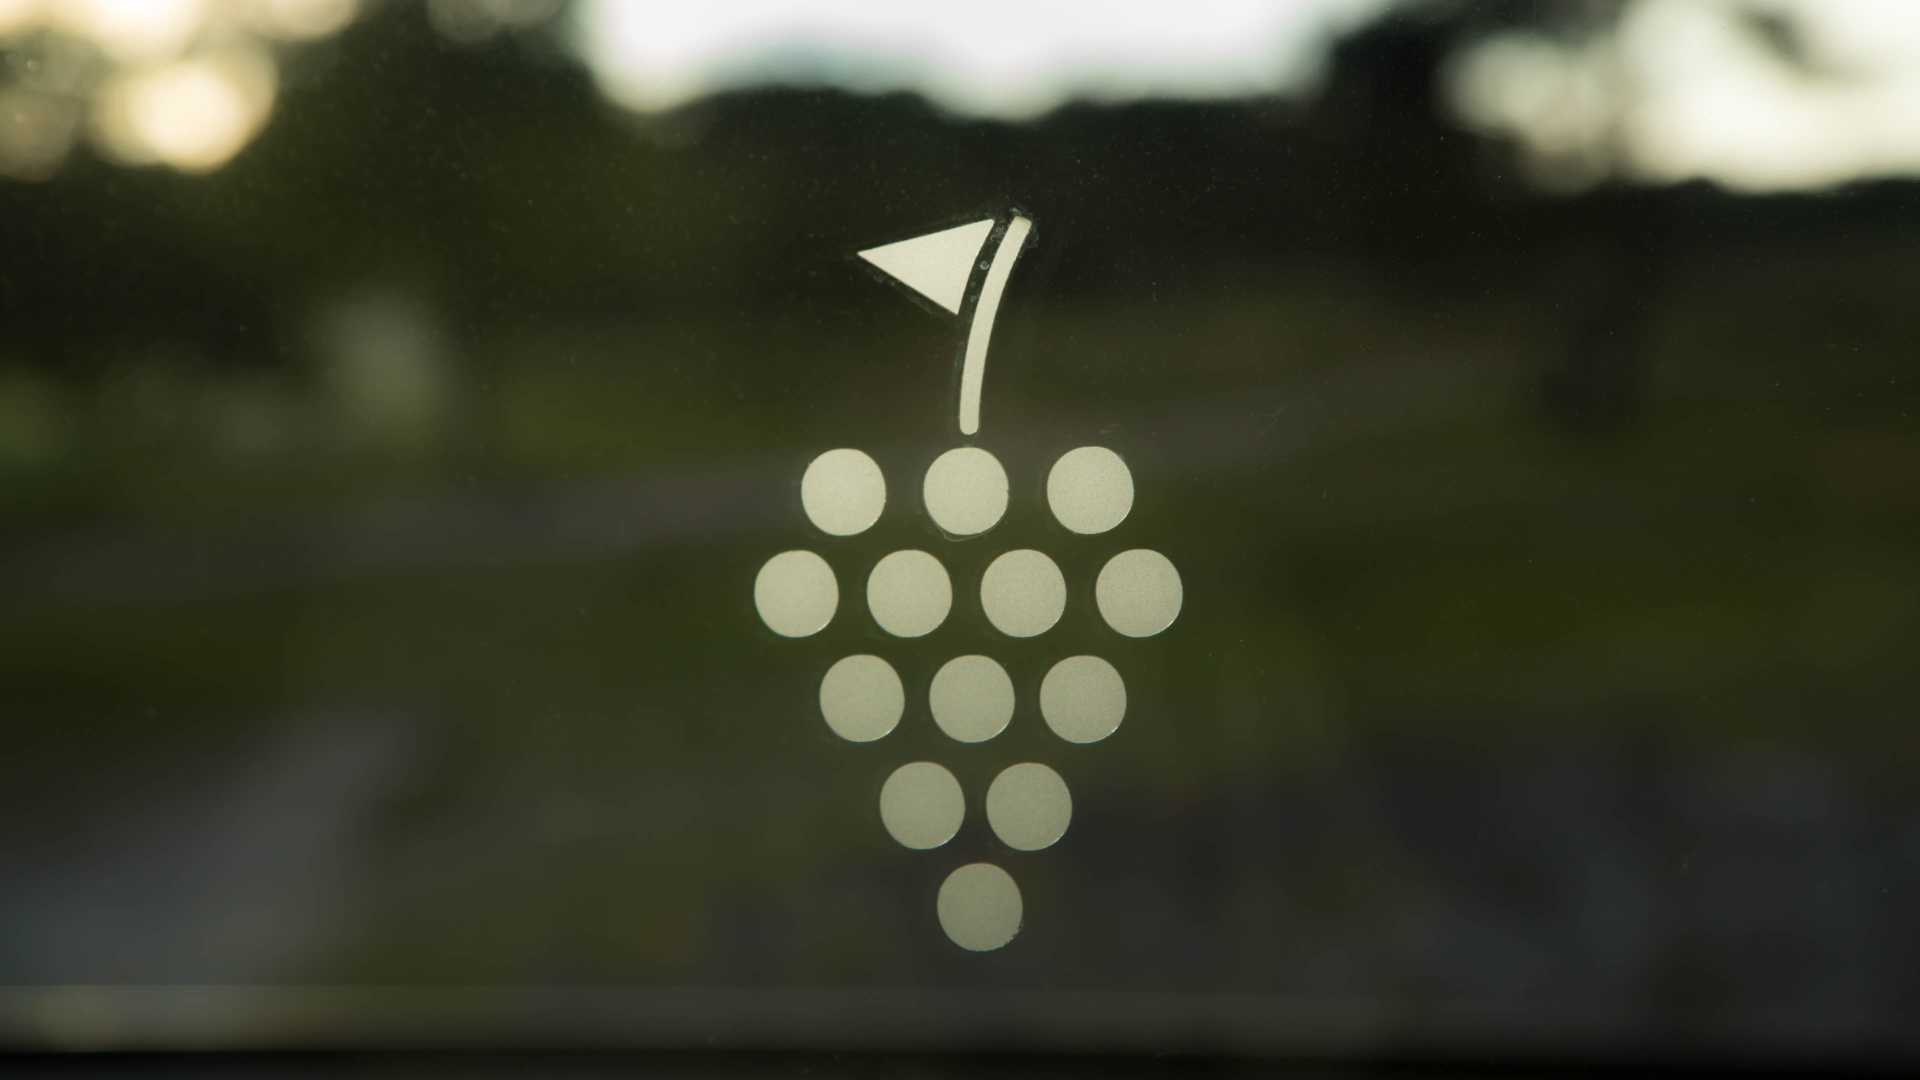 The logo tells you all you need to know - everything here revolves around a wine and golf combo.